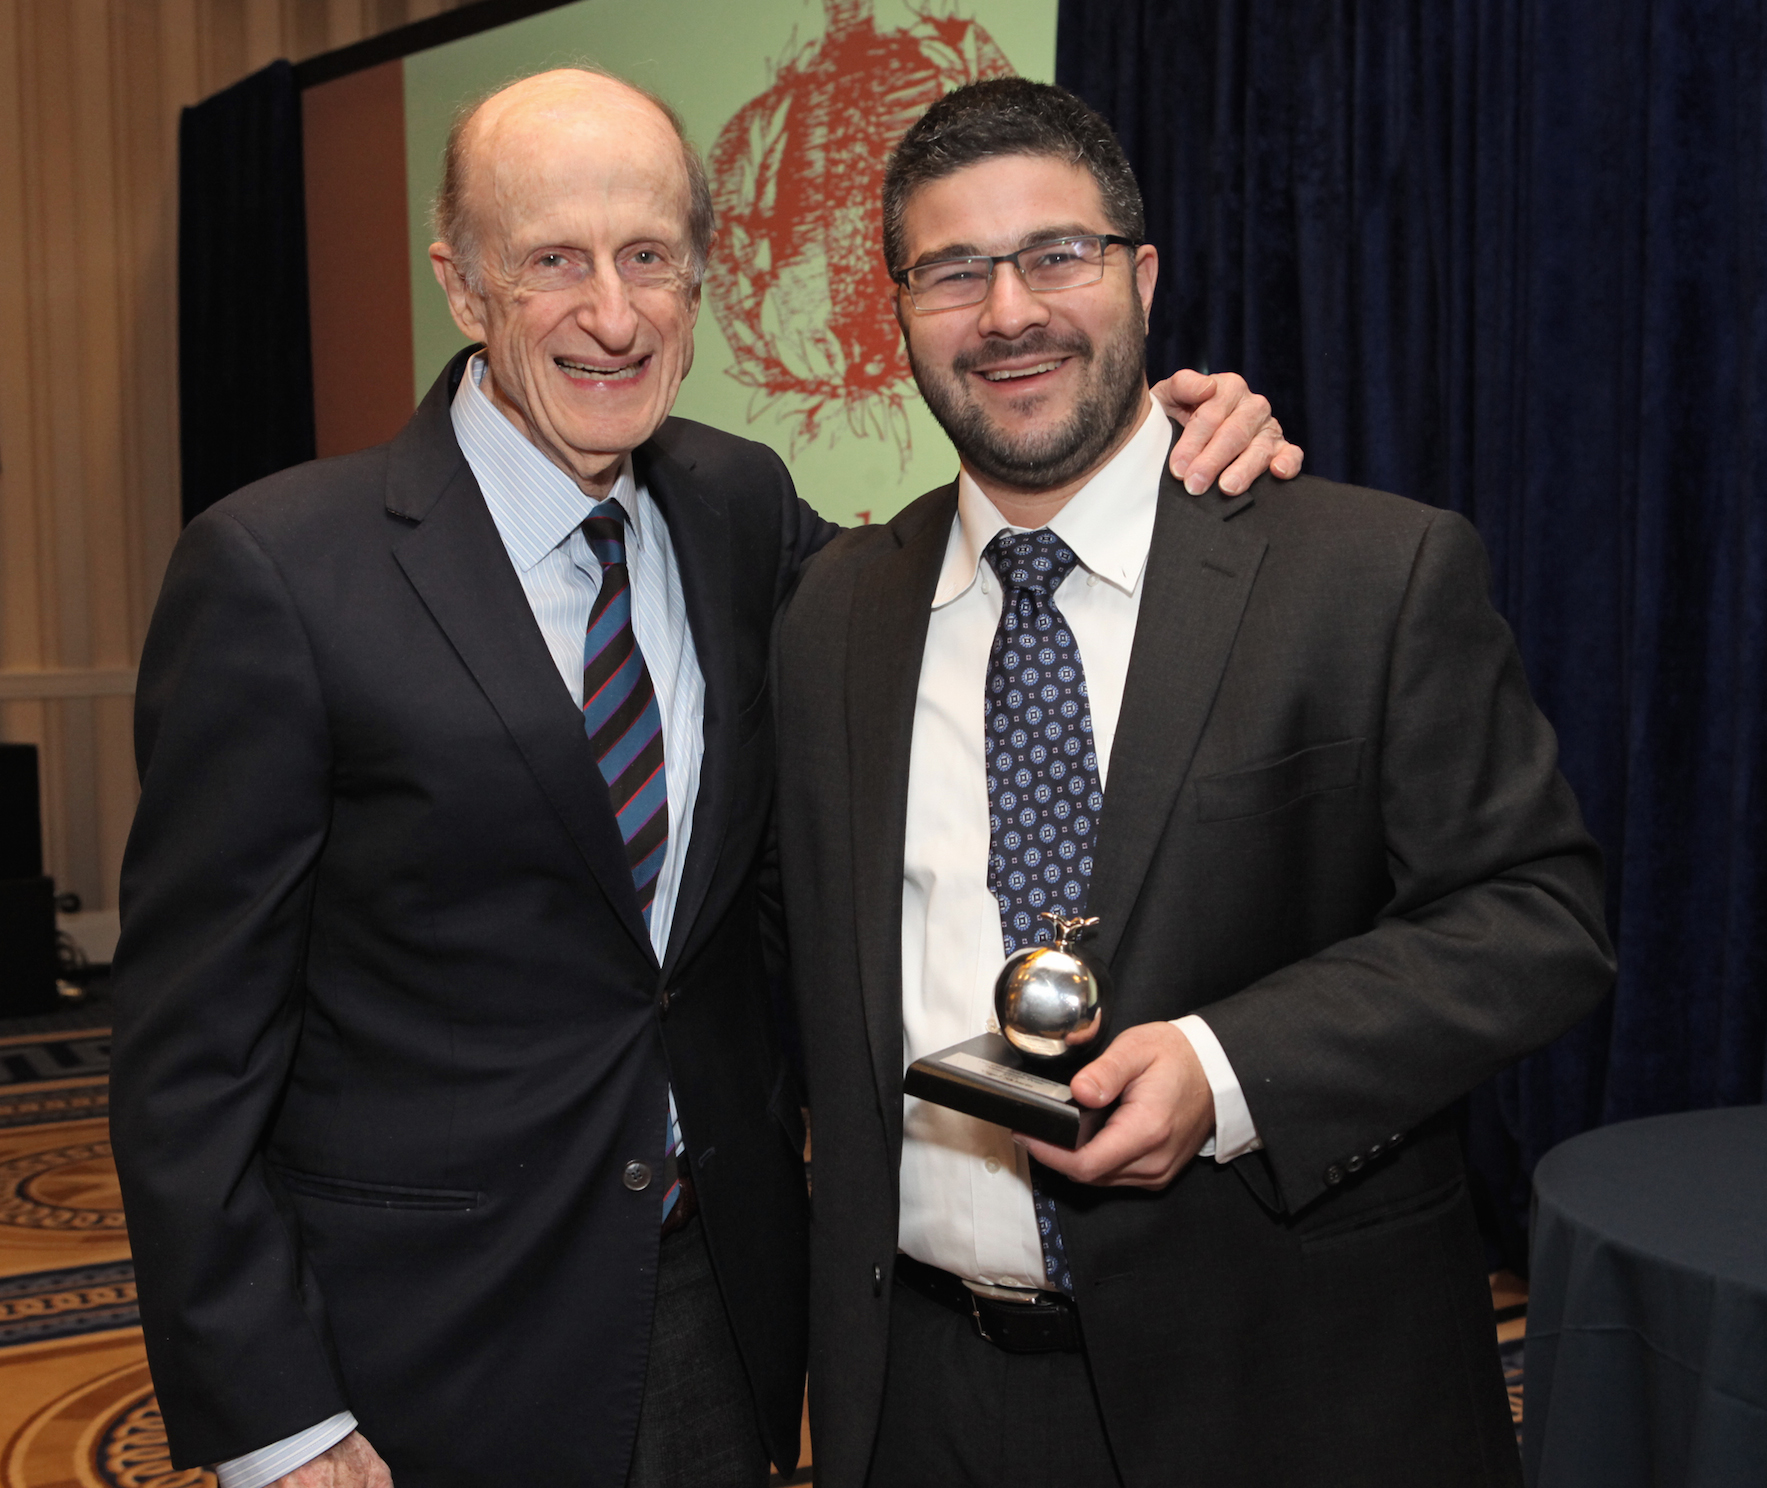 Rabbi Yigal Sklarin (right), recipient of the Pomegranate Prize, with Eli Evans, chairman of the Covenant Foundation